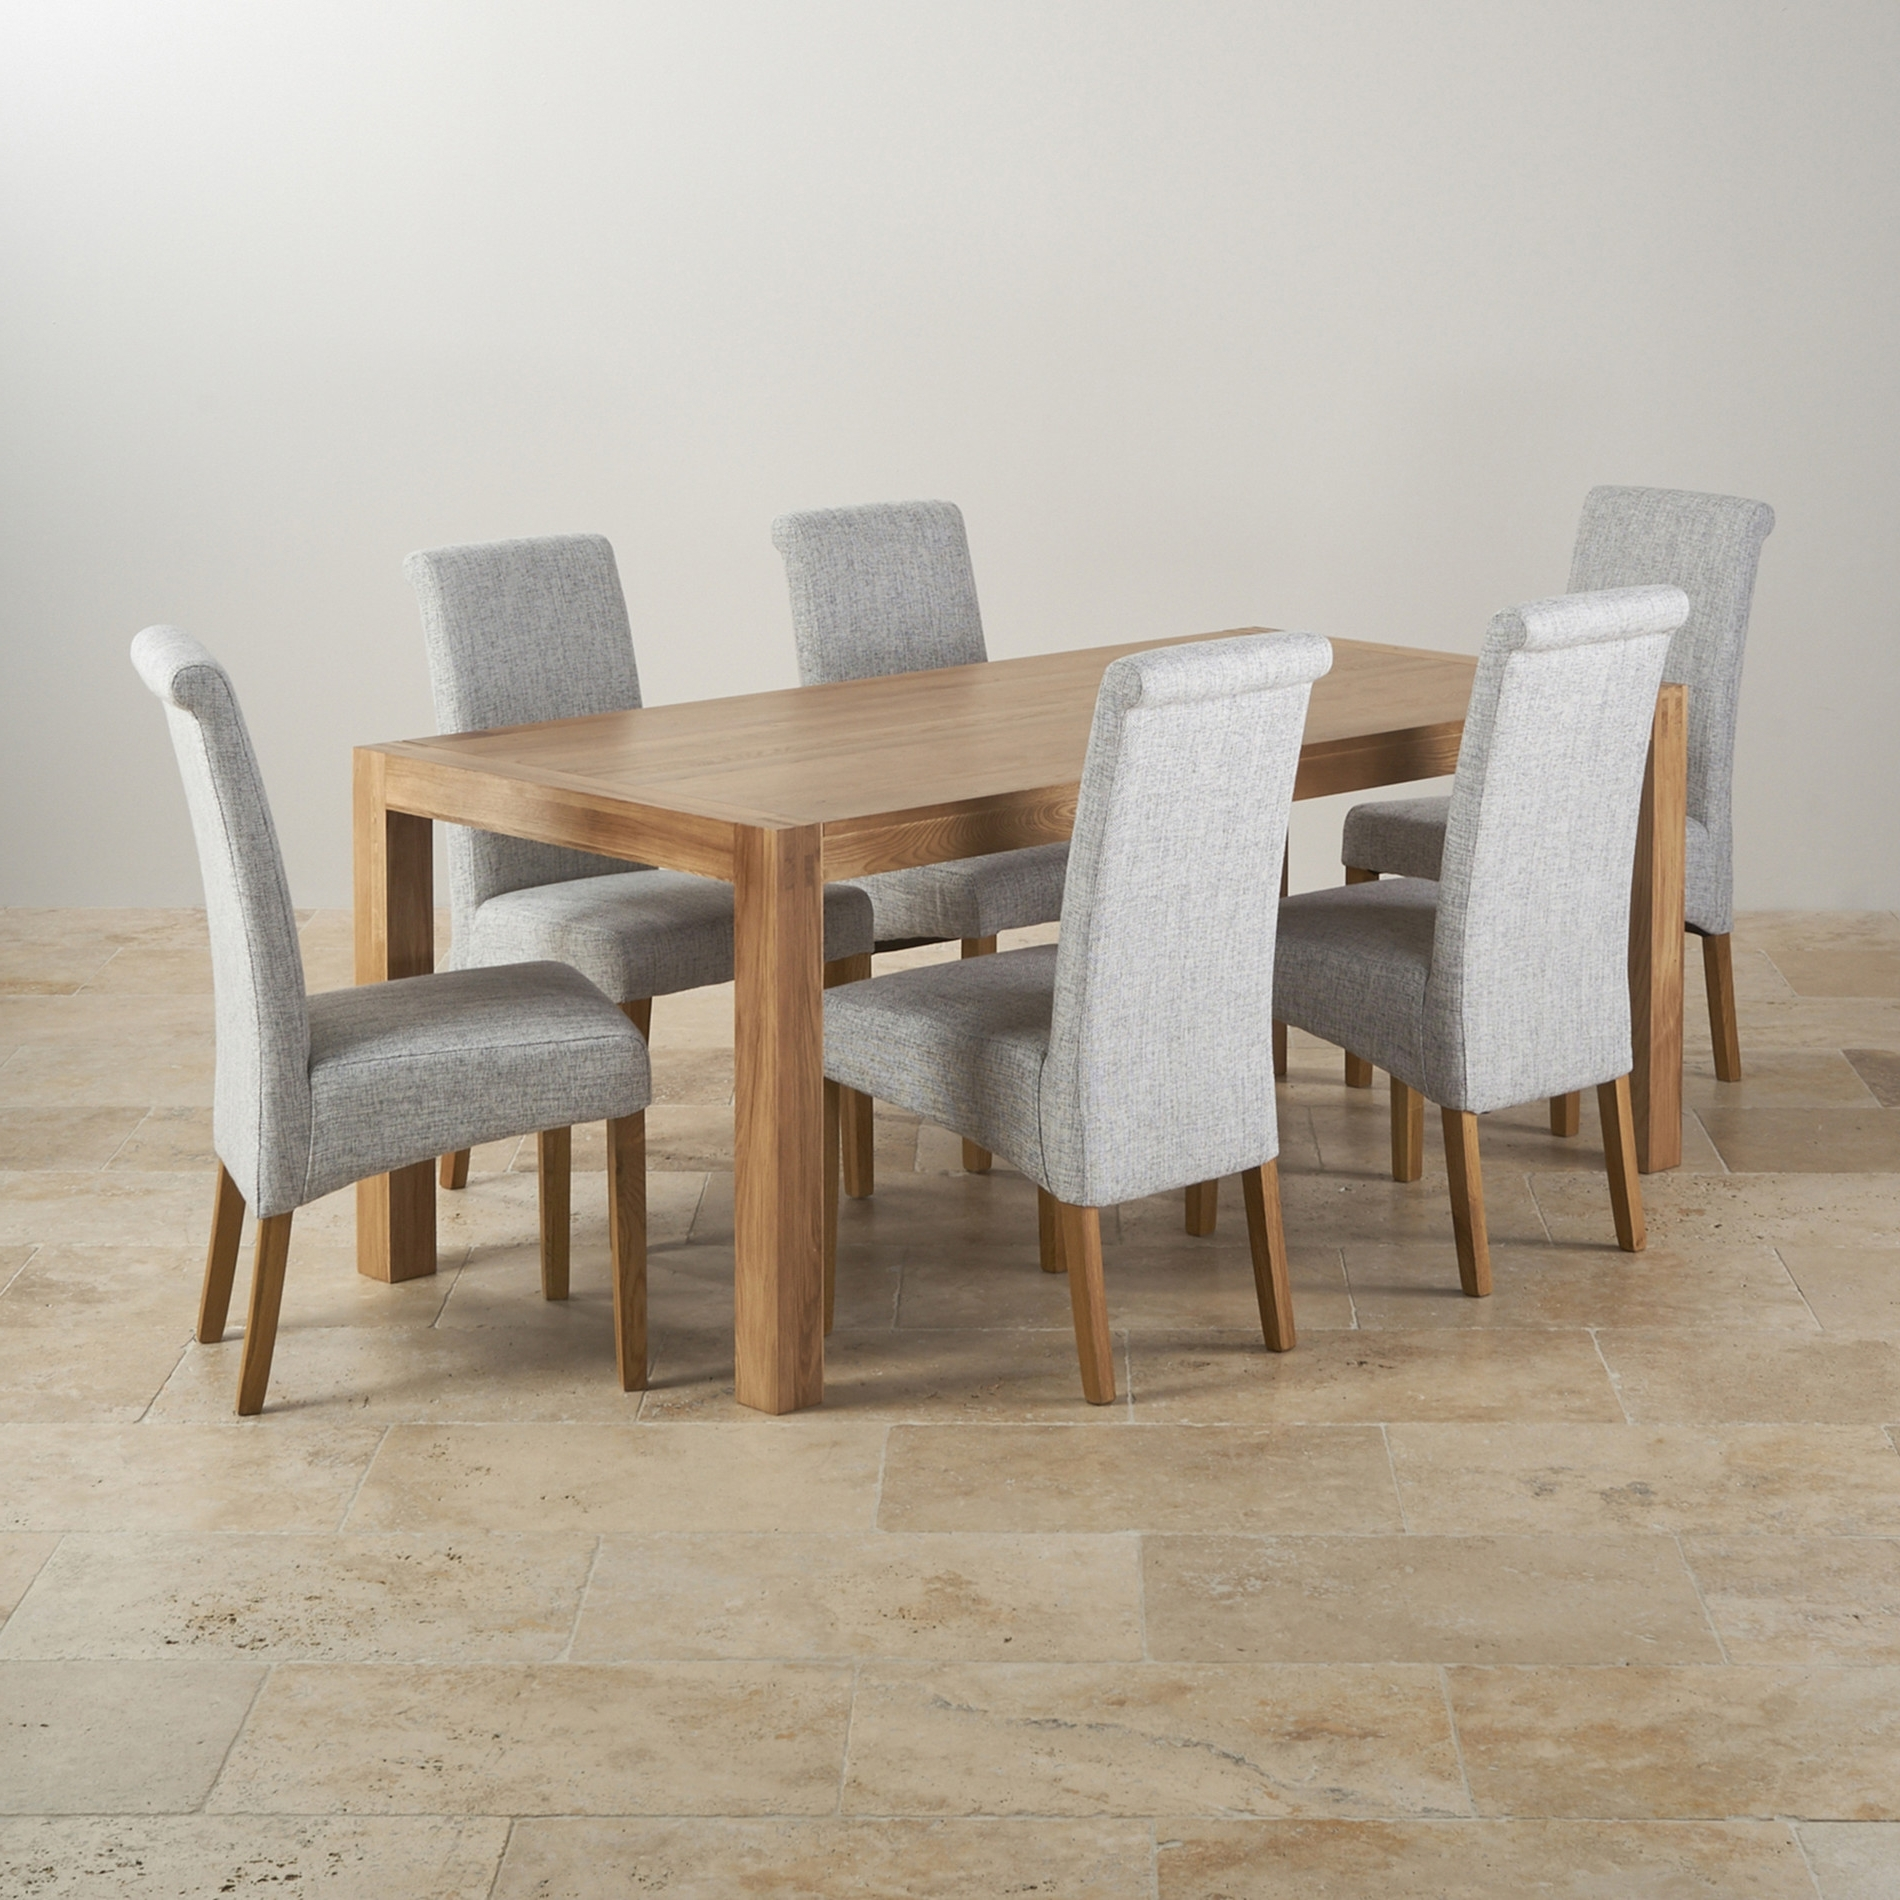 Widely Used Alto Solid Oak 6Ft Dining Table With 6 Grey Fabric Chairs Ghost In Oak Dining Tables And Fabric Chairs (View 24 of 25)